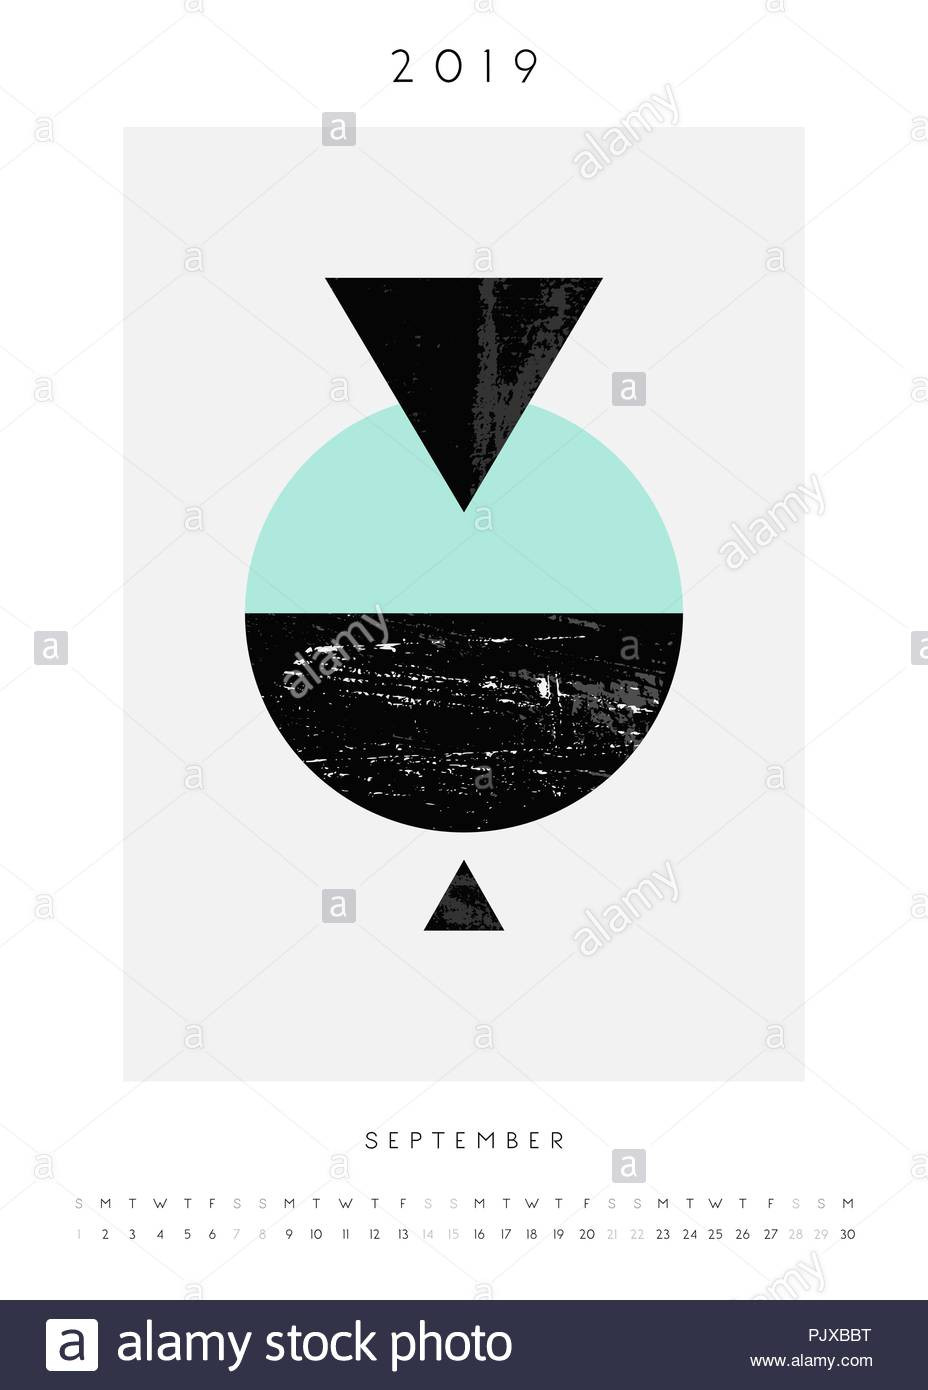 Geometry Template Printable Printable A4 Size September 2019 Calendar Template Abstract